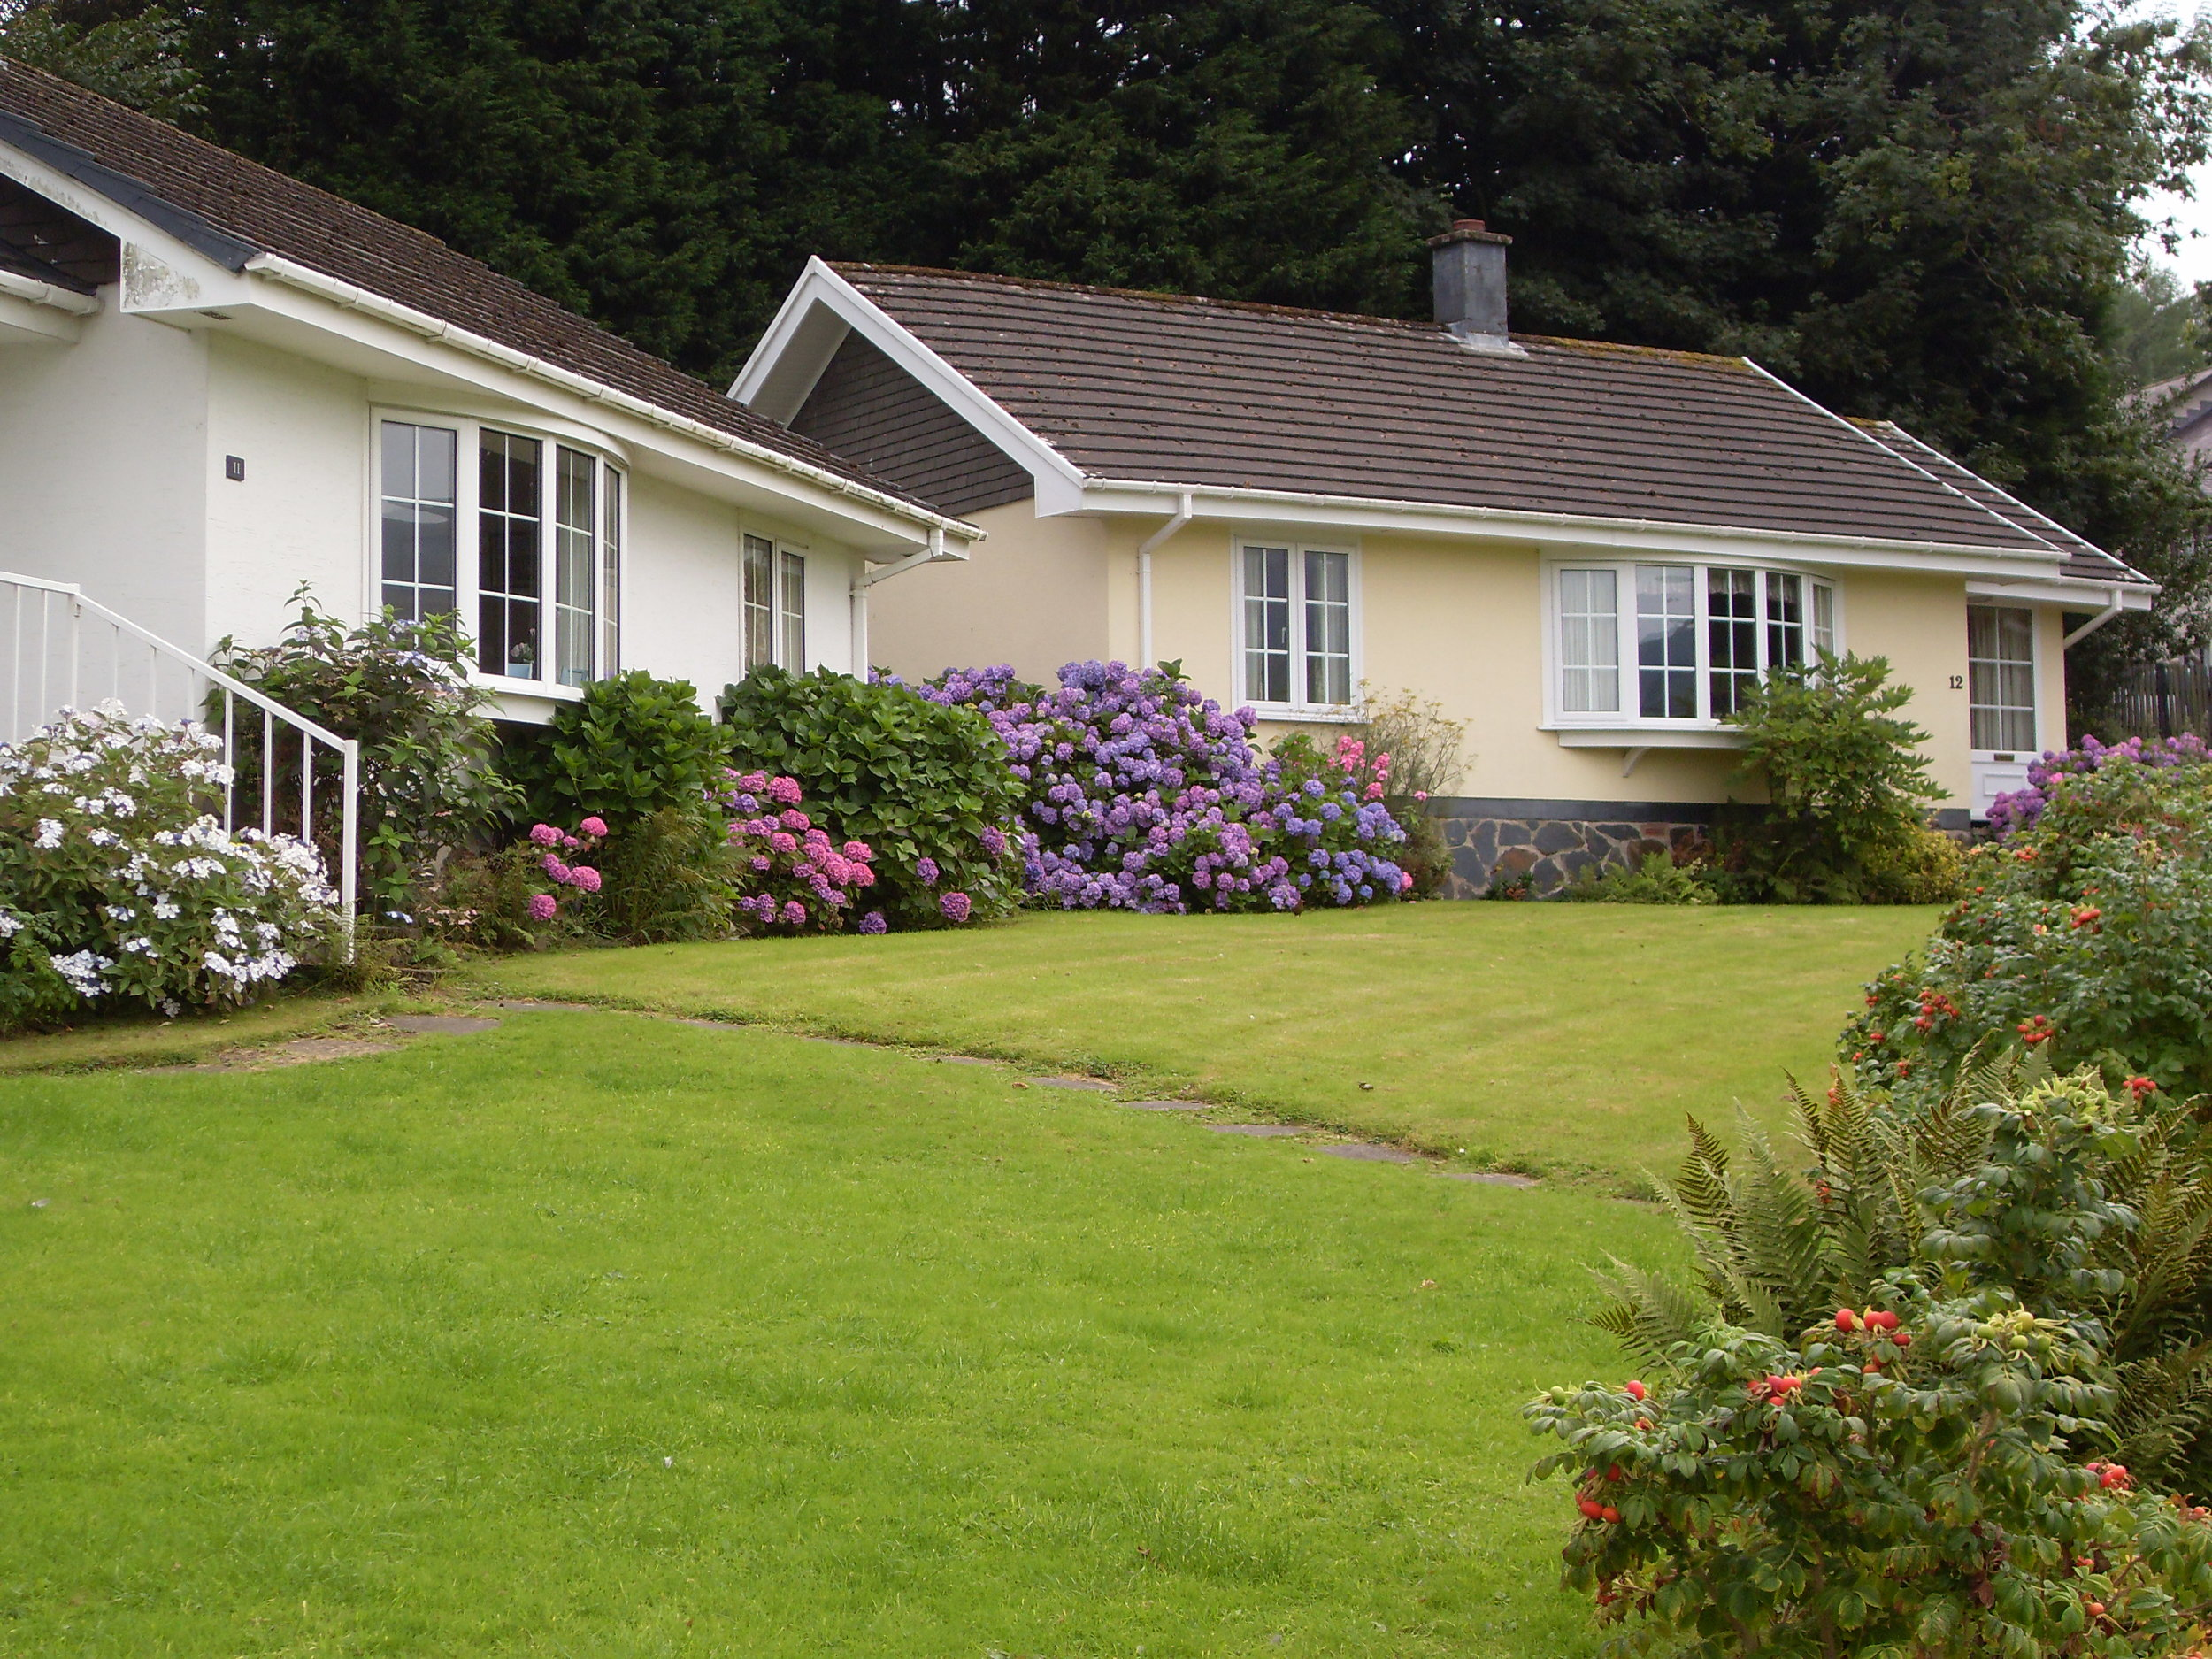 Plas Talgarth Bungalows.JPG